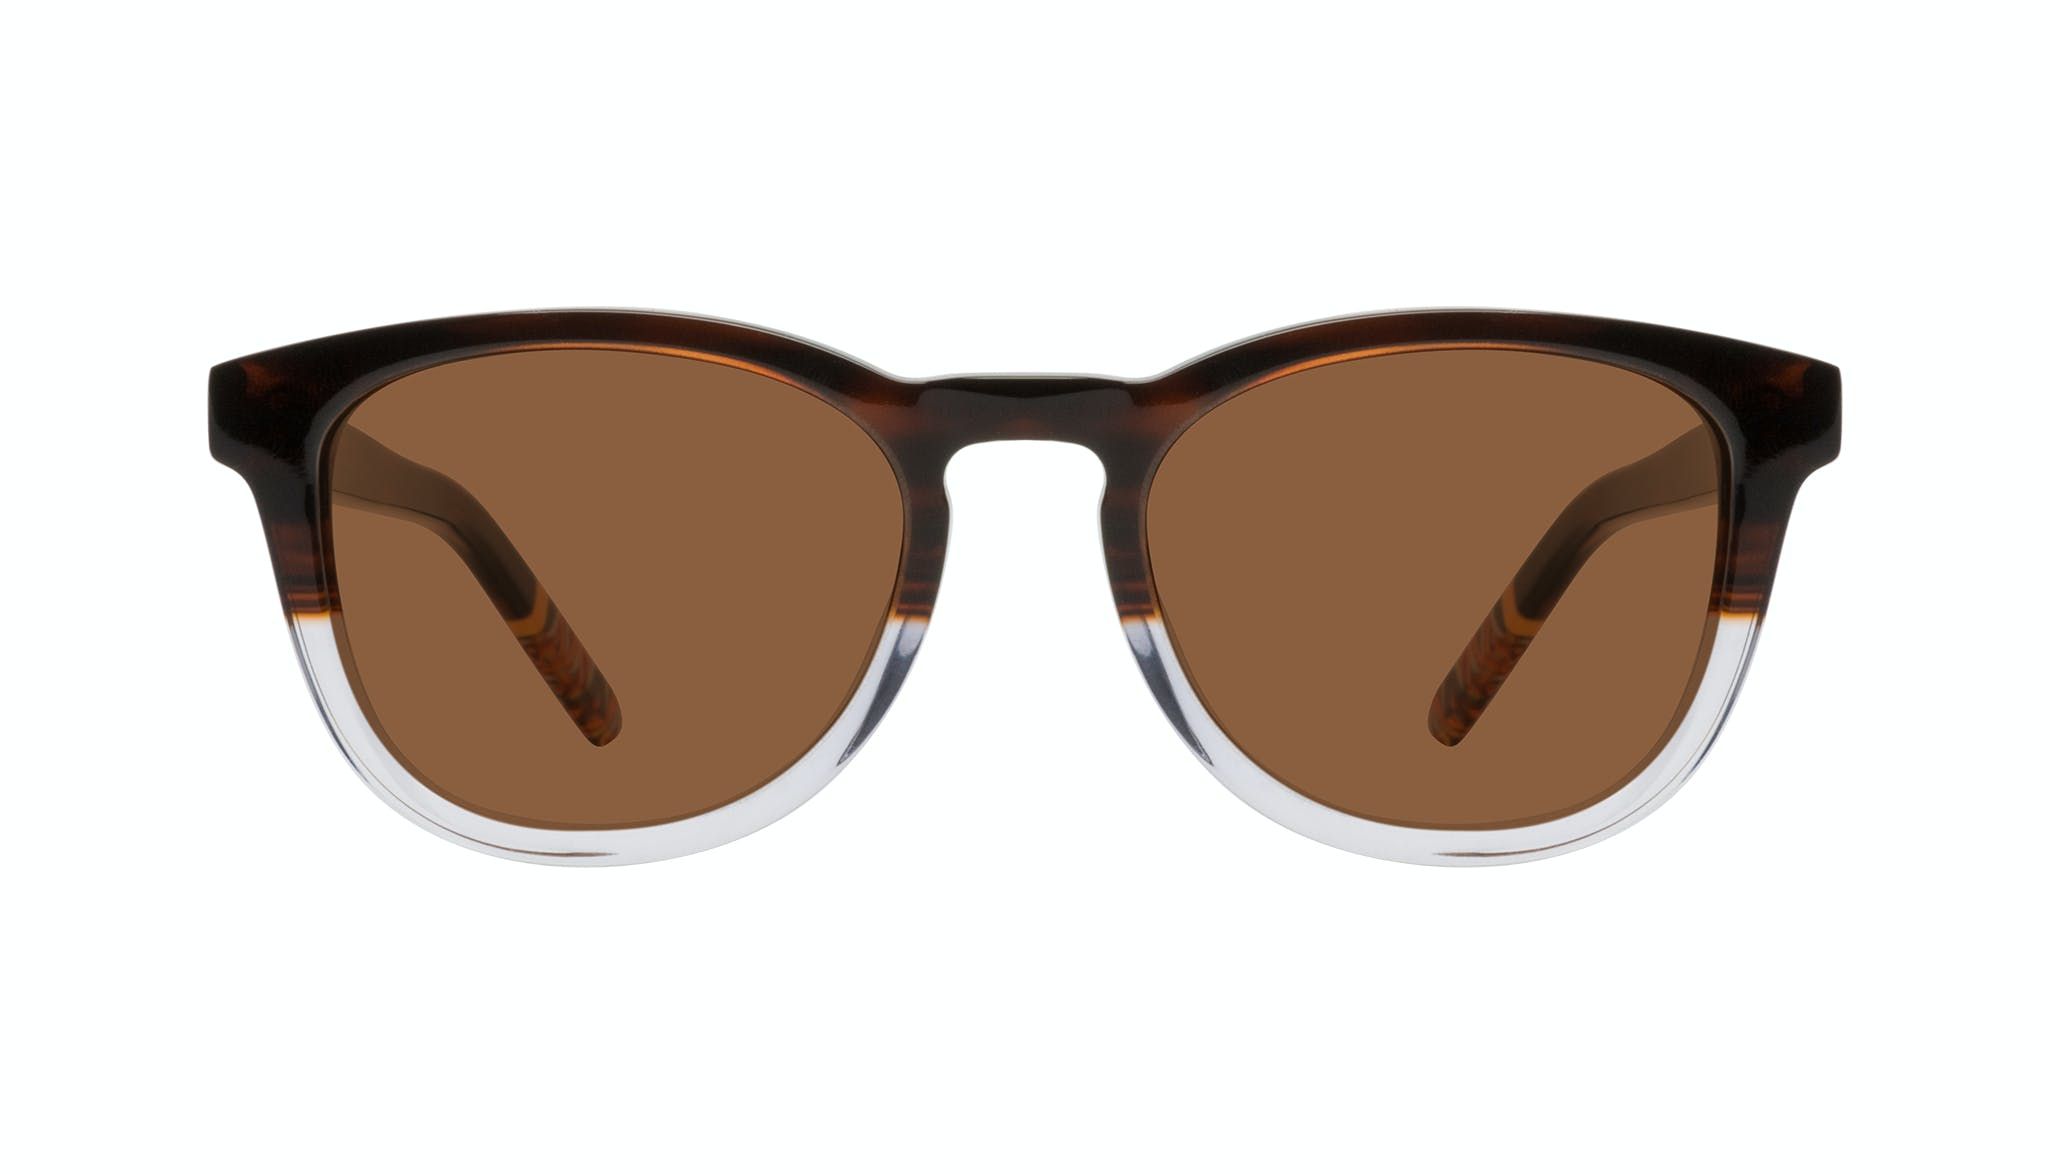 Affordable Fashion Glasses Round Sunglasses Men Goal Bark Front